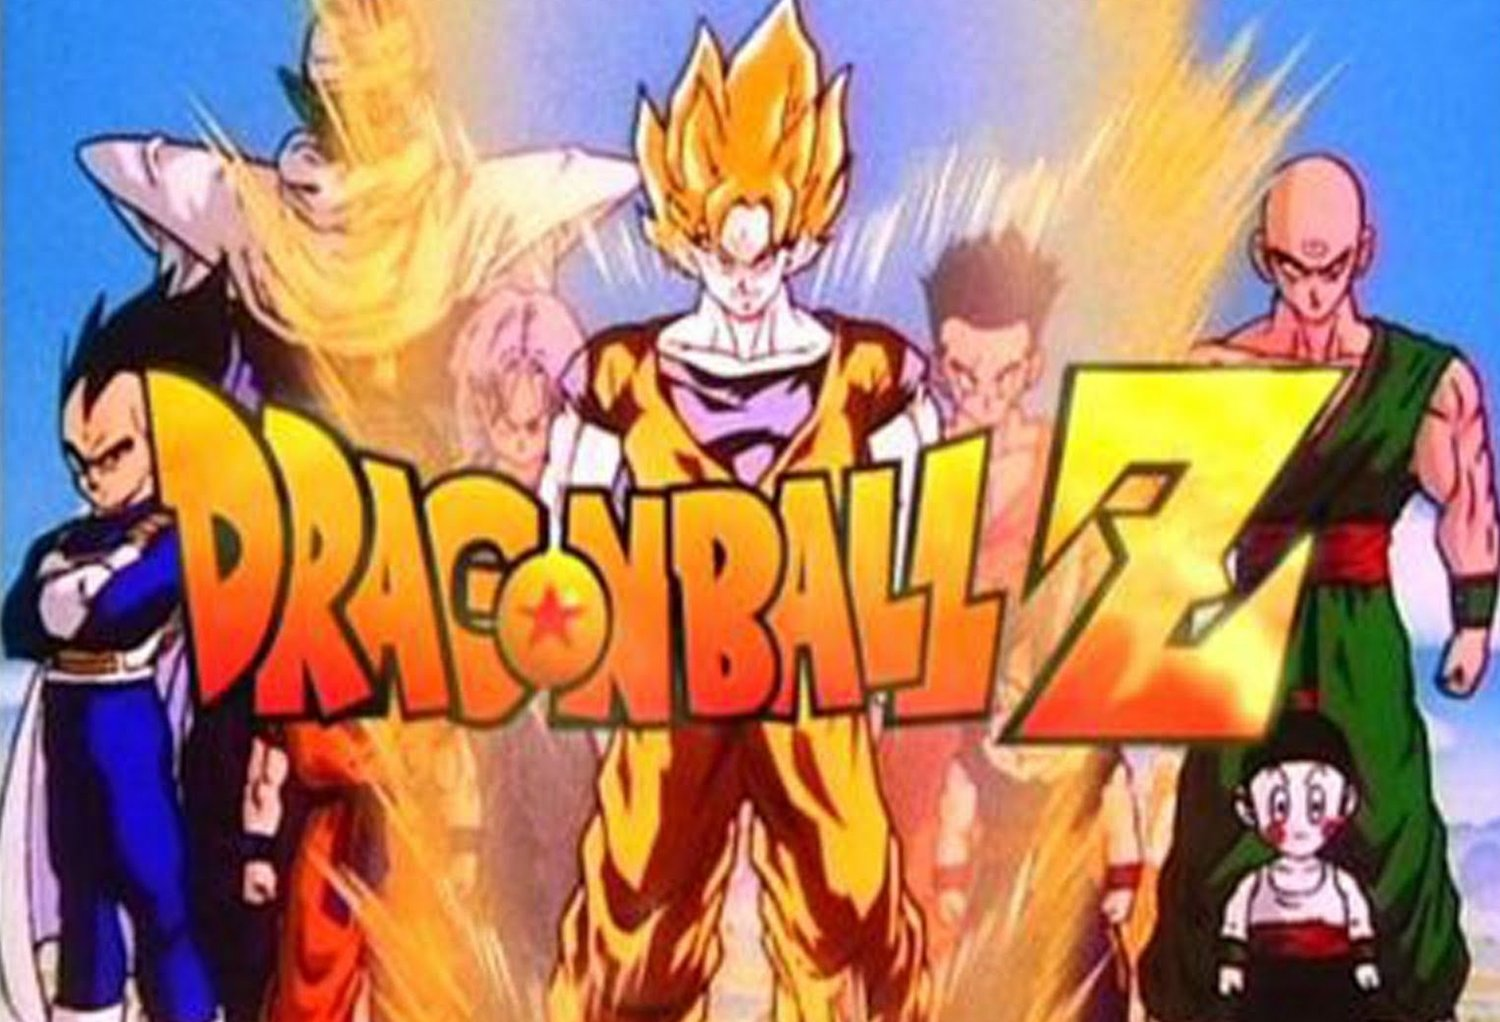 Hurry and grab season 1 of dragon ball z free courtesy of microsoft remember how a couple weeks ago you could pick up the first season of dragon ball super for free from microsoft well theyre offering up the first season altavistaventures Choice Image